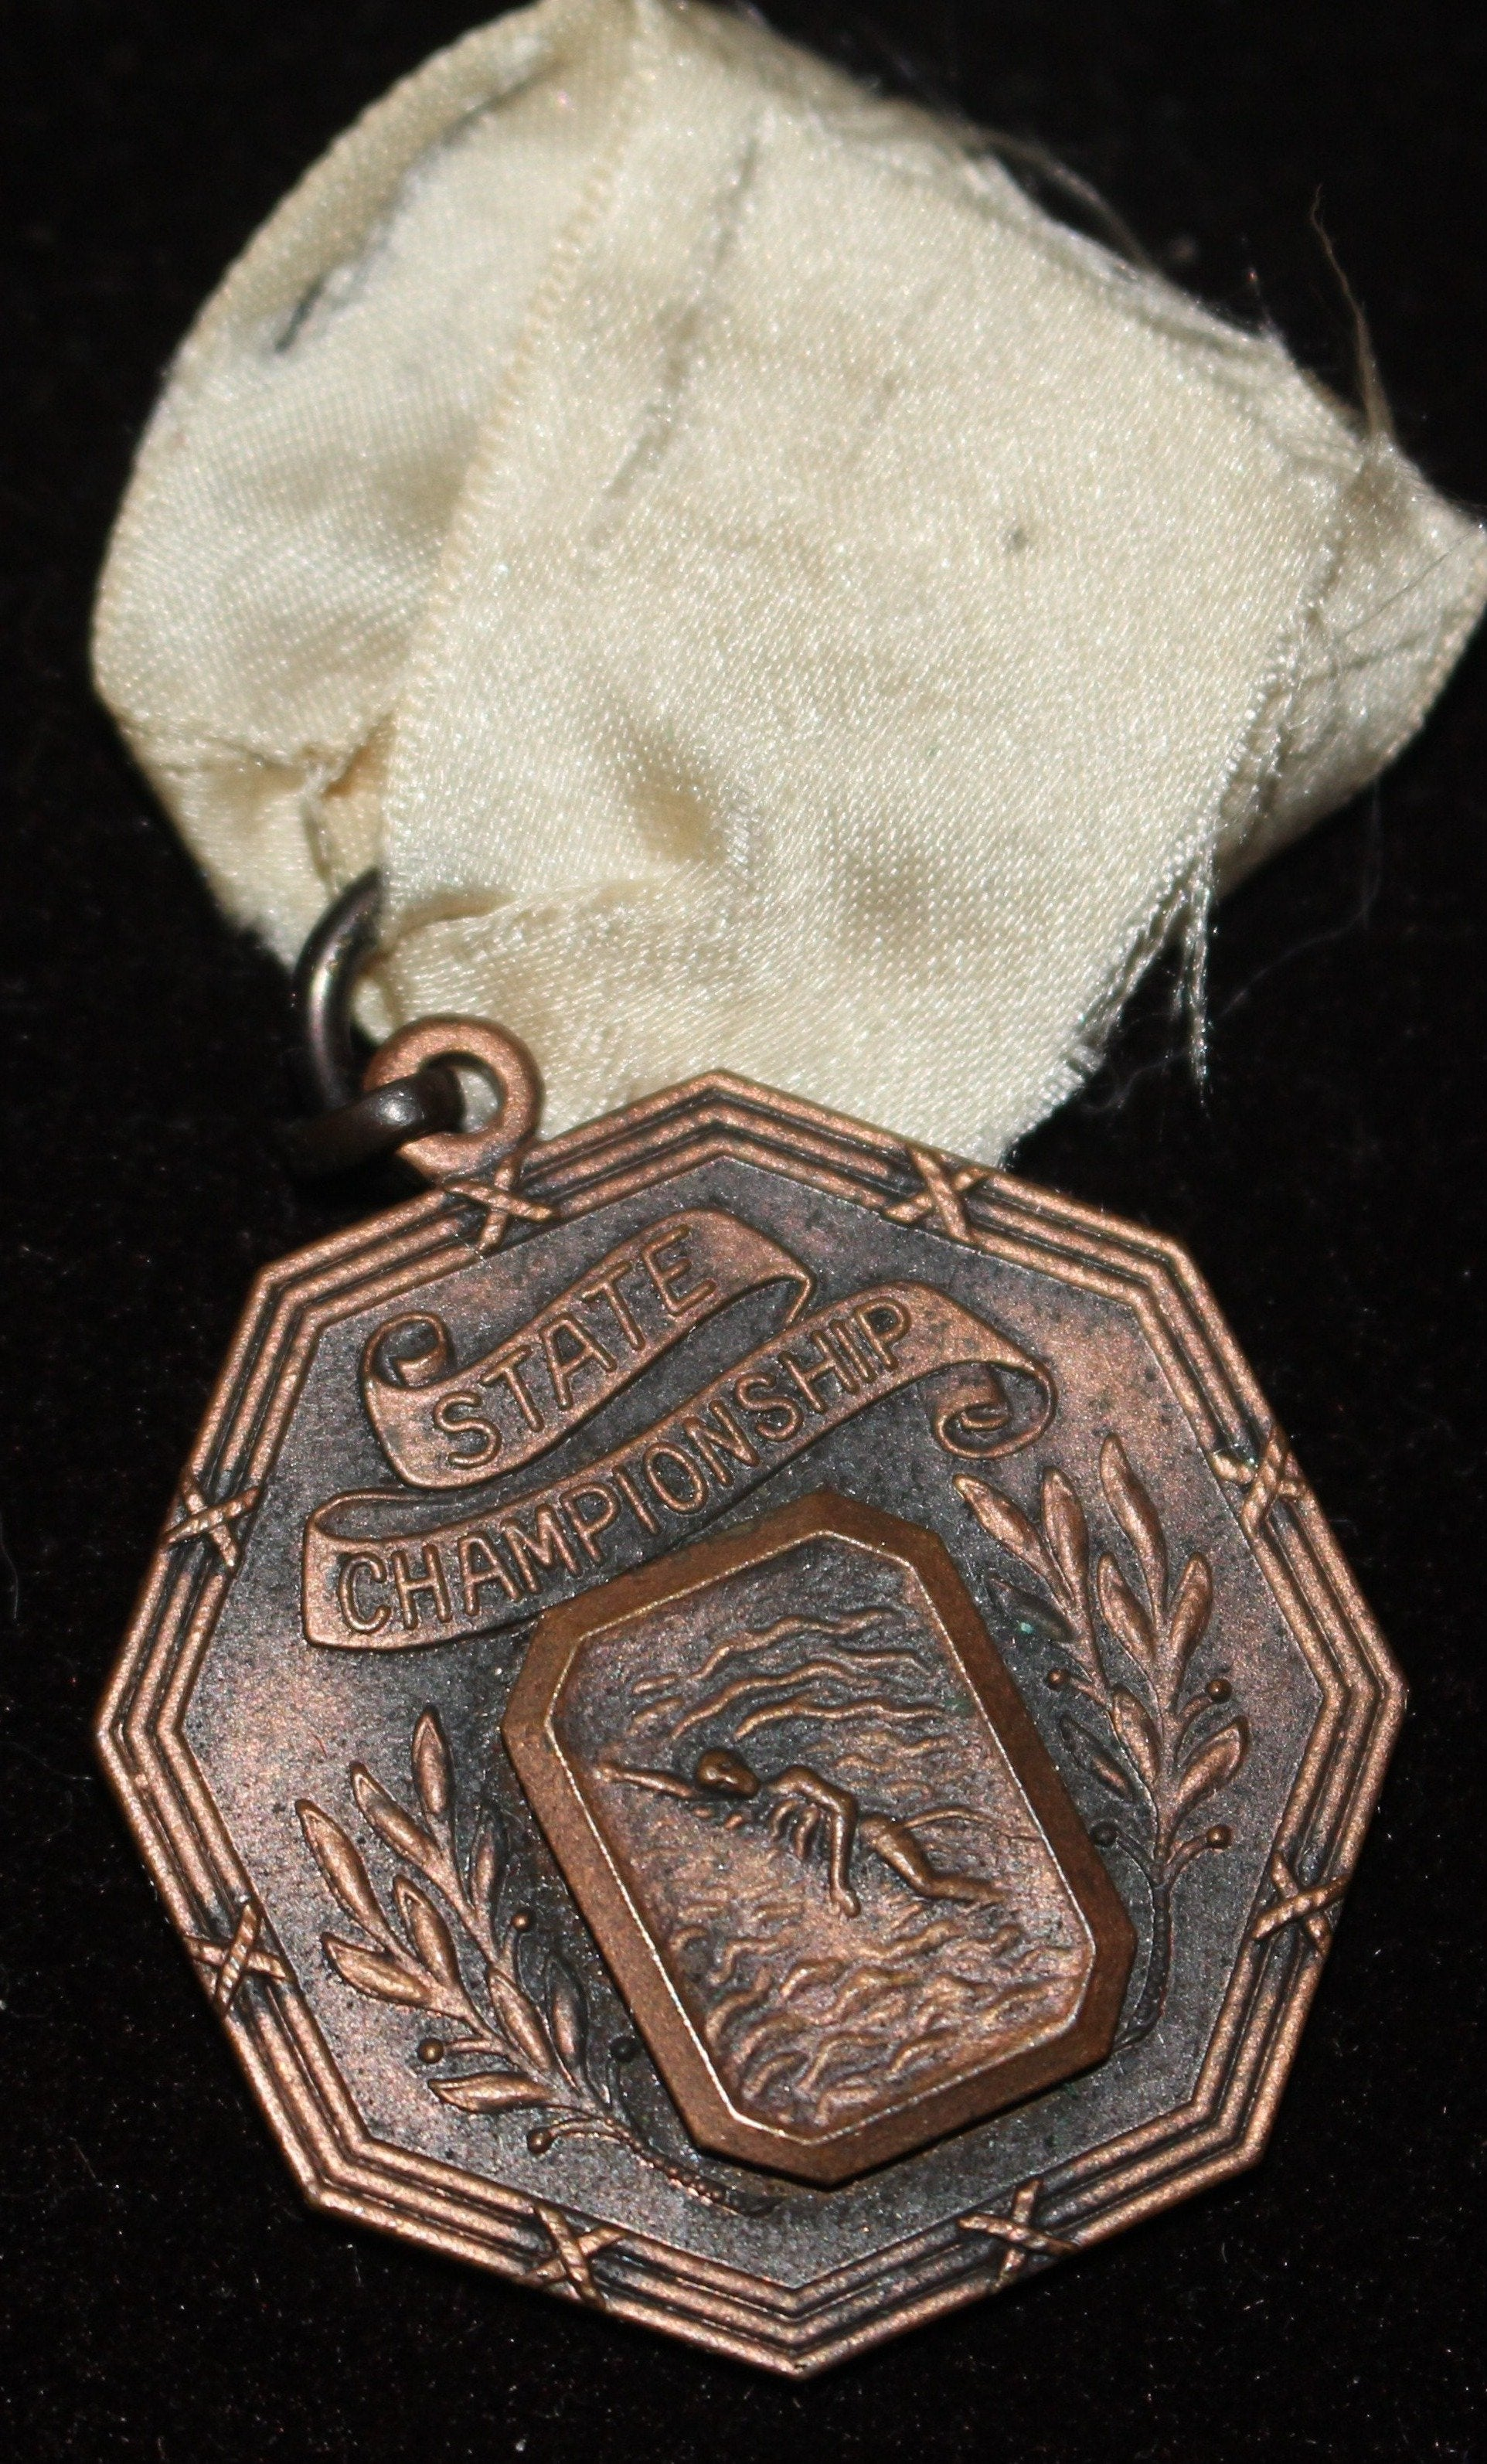 1920's Indiana High School Swimming 100 M Freestyle State Champions Medal - Vintage Indy Sports